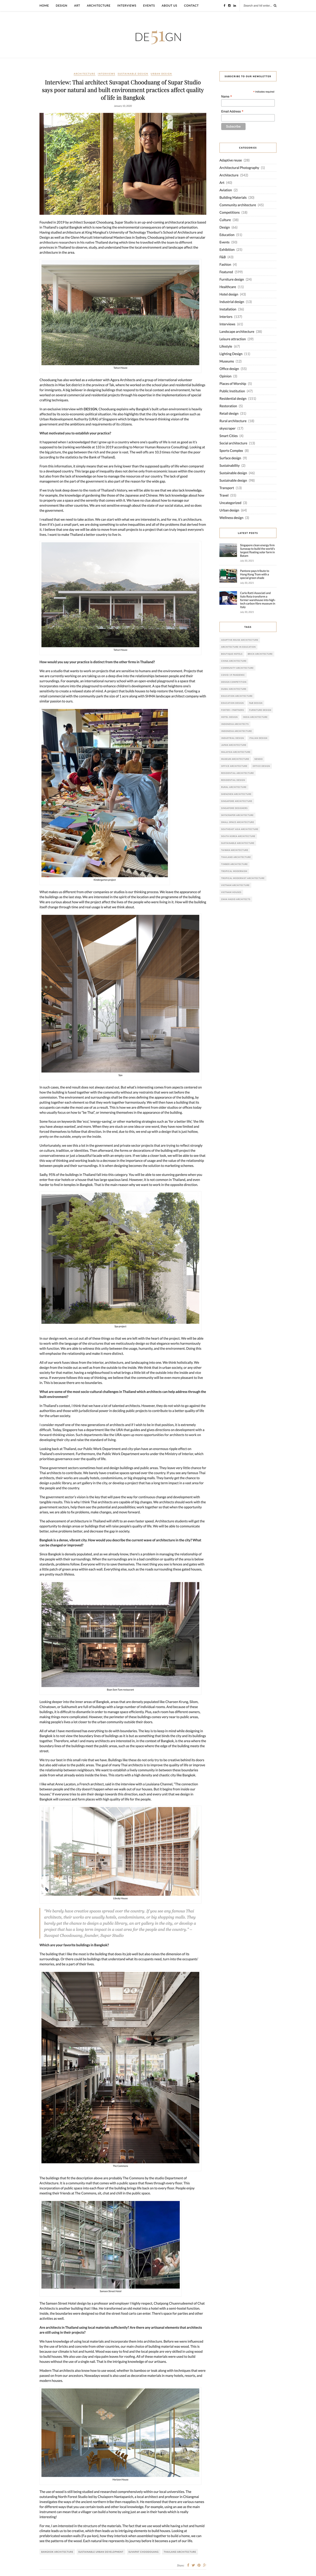 Interview Thai architect Suvapat Chooduang of Supar Studio says poor natural and built environment practices affect quality of life in Bangkok De51gn 1